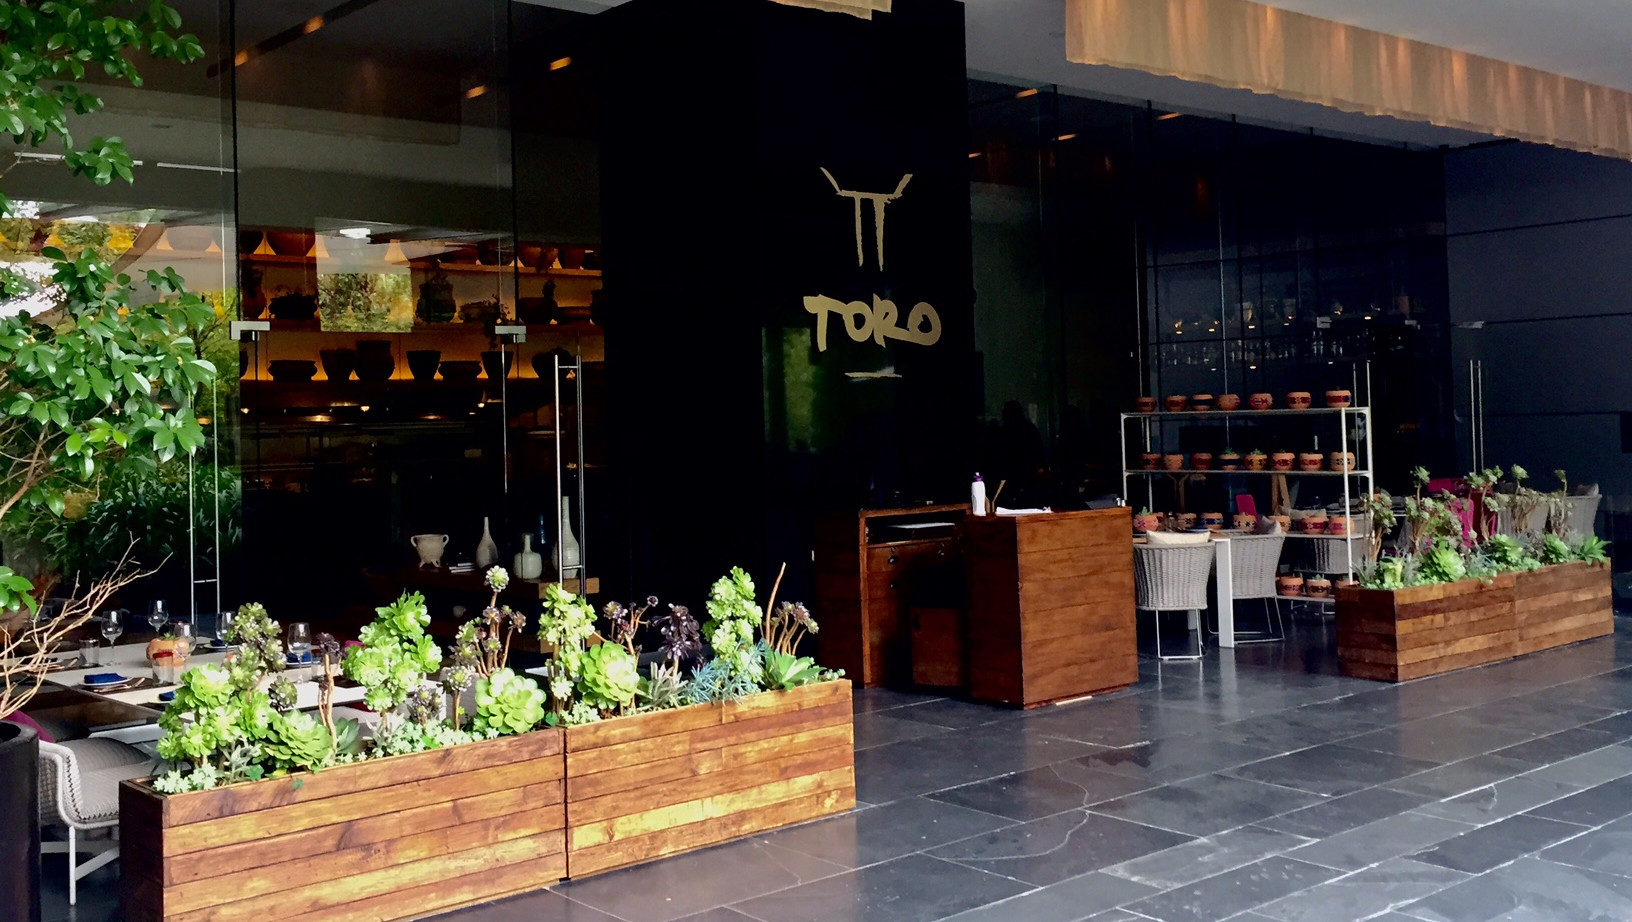 Toro Latin Kitchen Bar In Mexico City Restaurant Reviews Menu And Prices Thefork